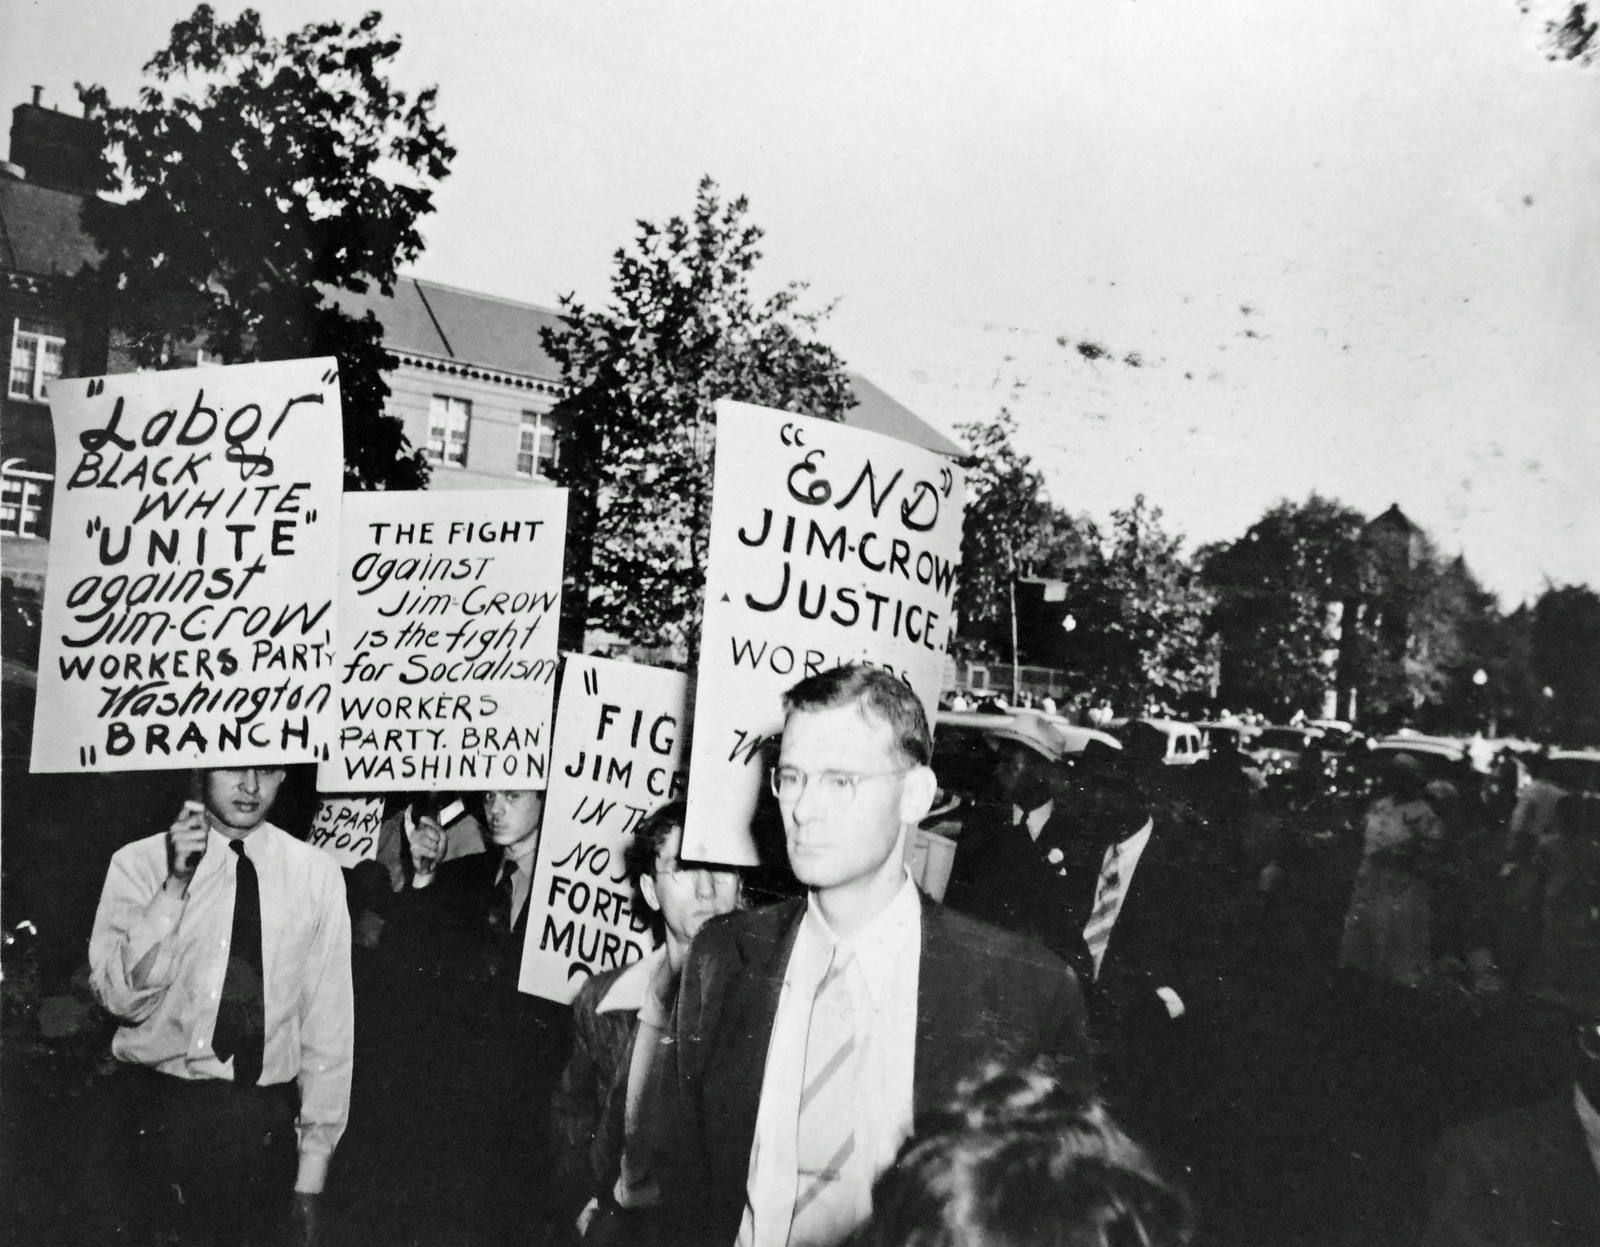 Workers' Party Lines Up to March Against DC Police Brutality: 1941